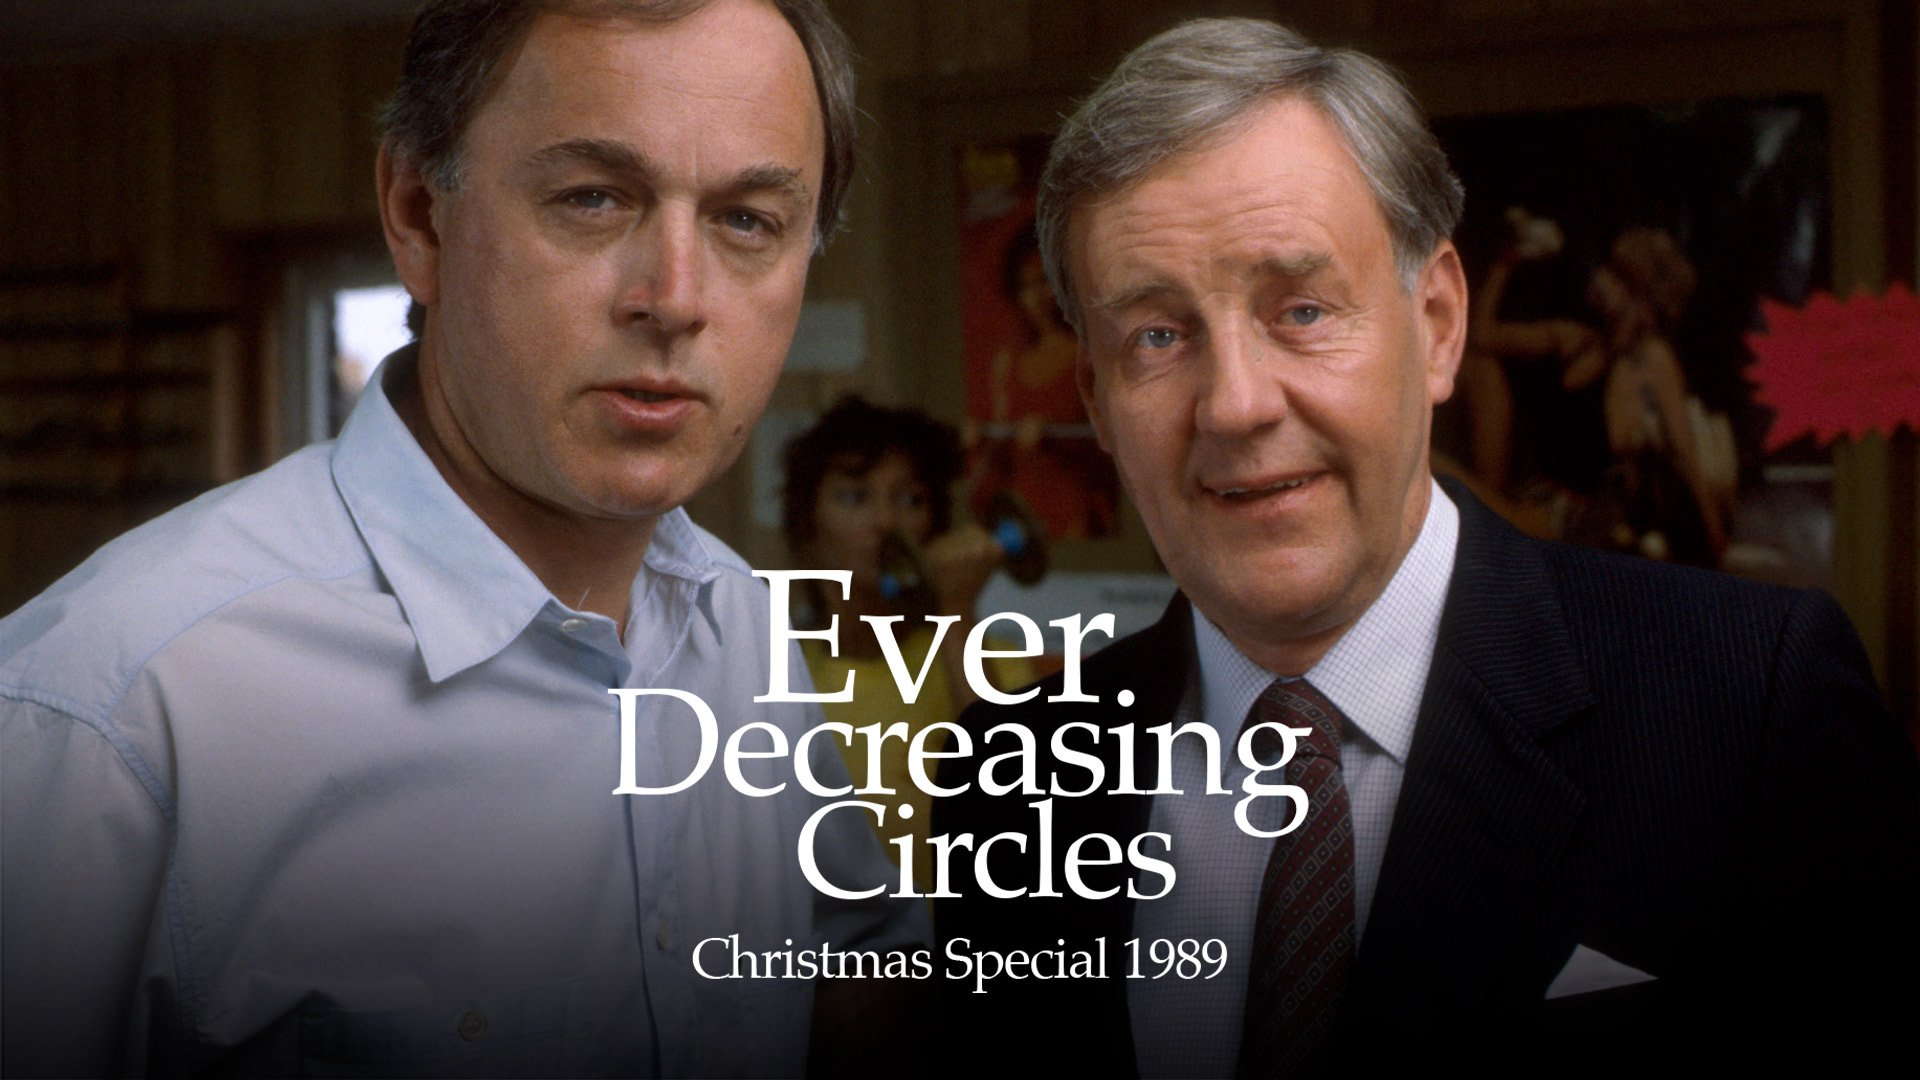 Ever Decreasing Circles Christmas Special 1989 on BritBox UK